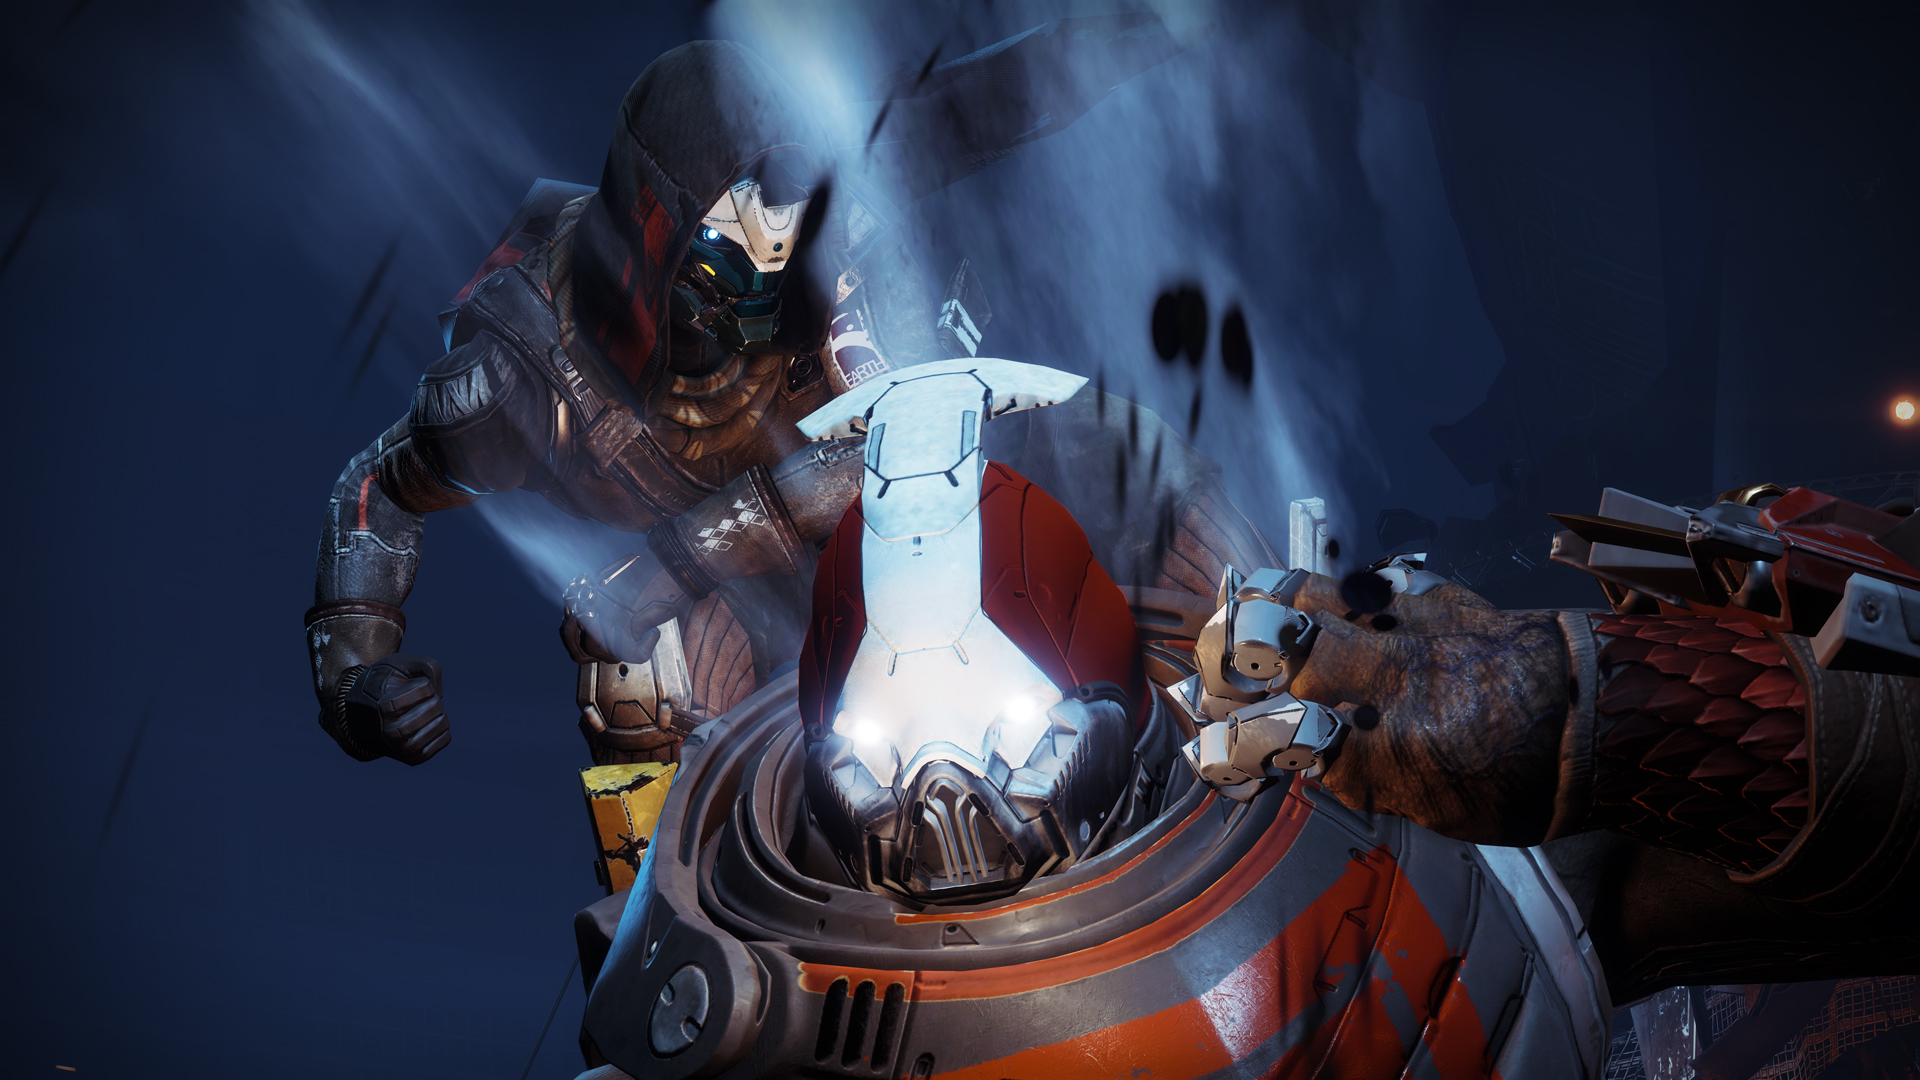 Destiny 2 Update 1 2 3 Adds Tons of Quality of Life Improvements